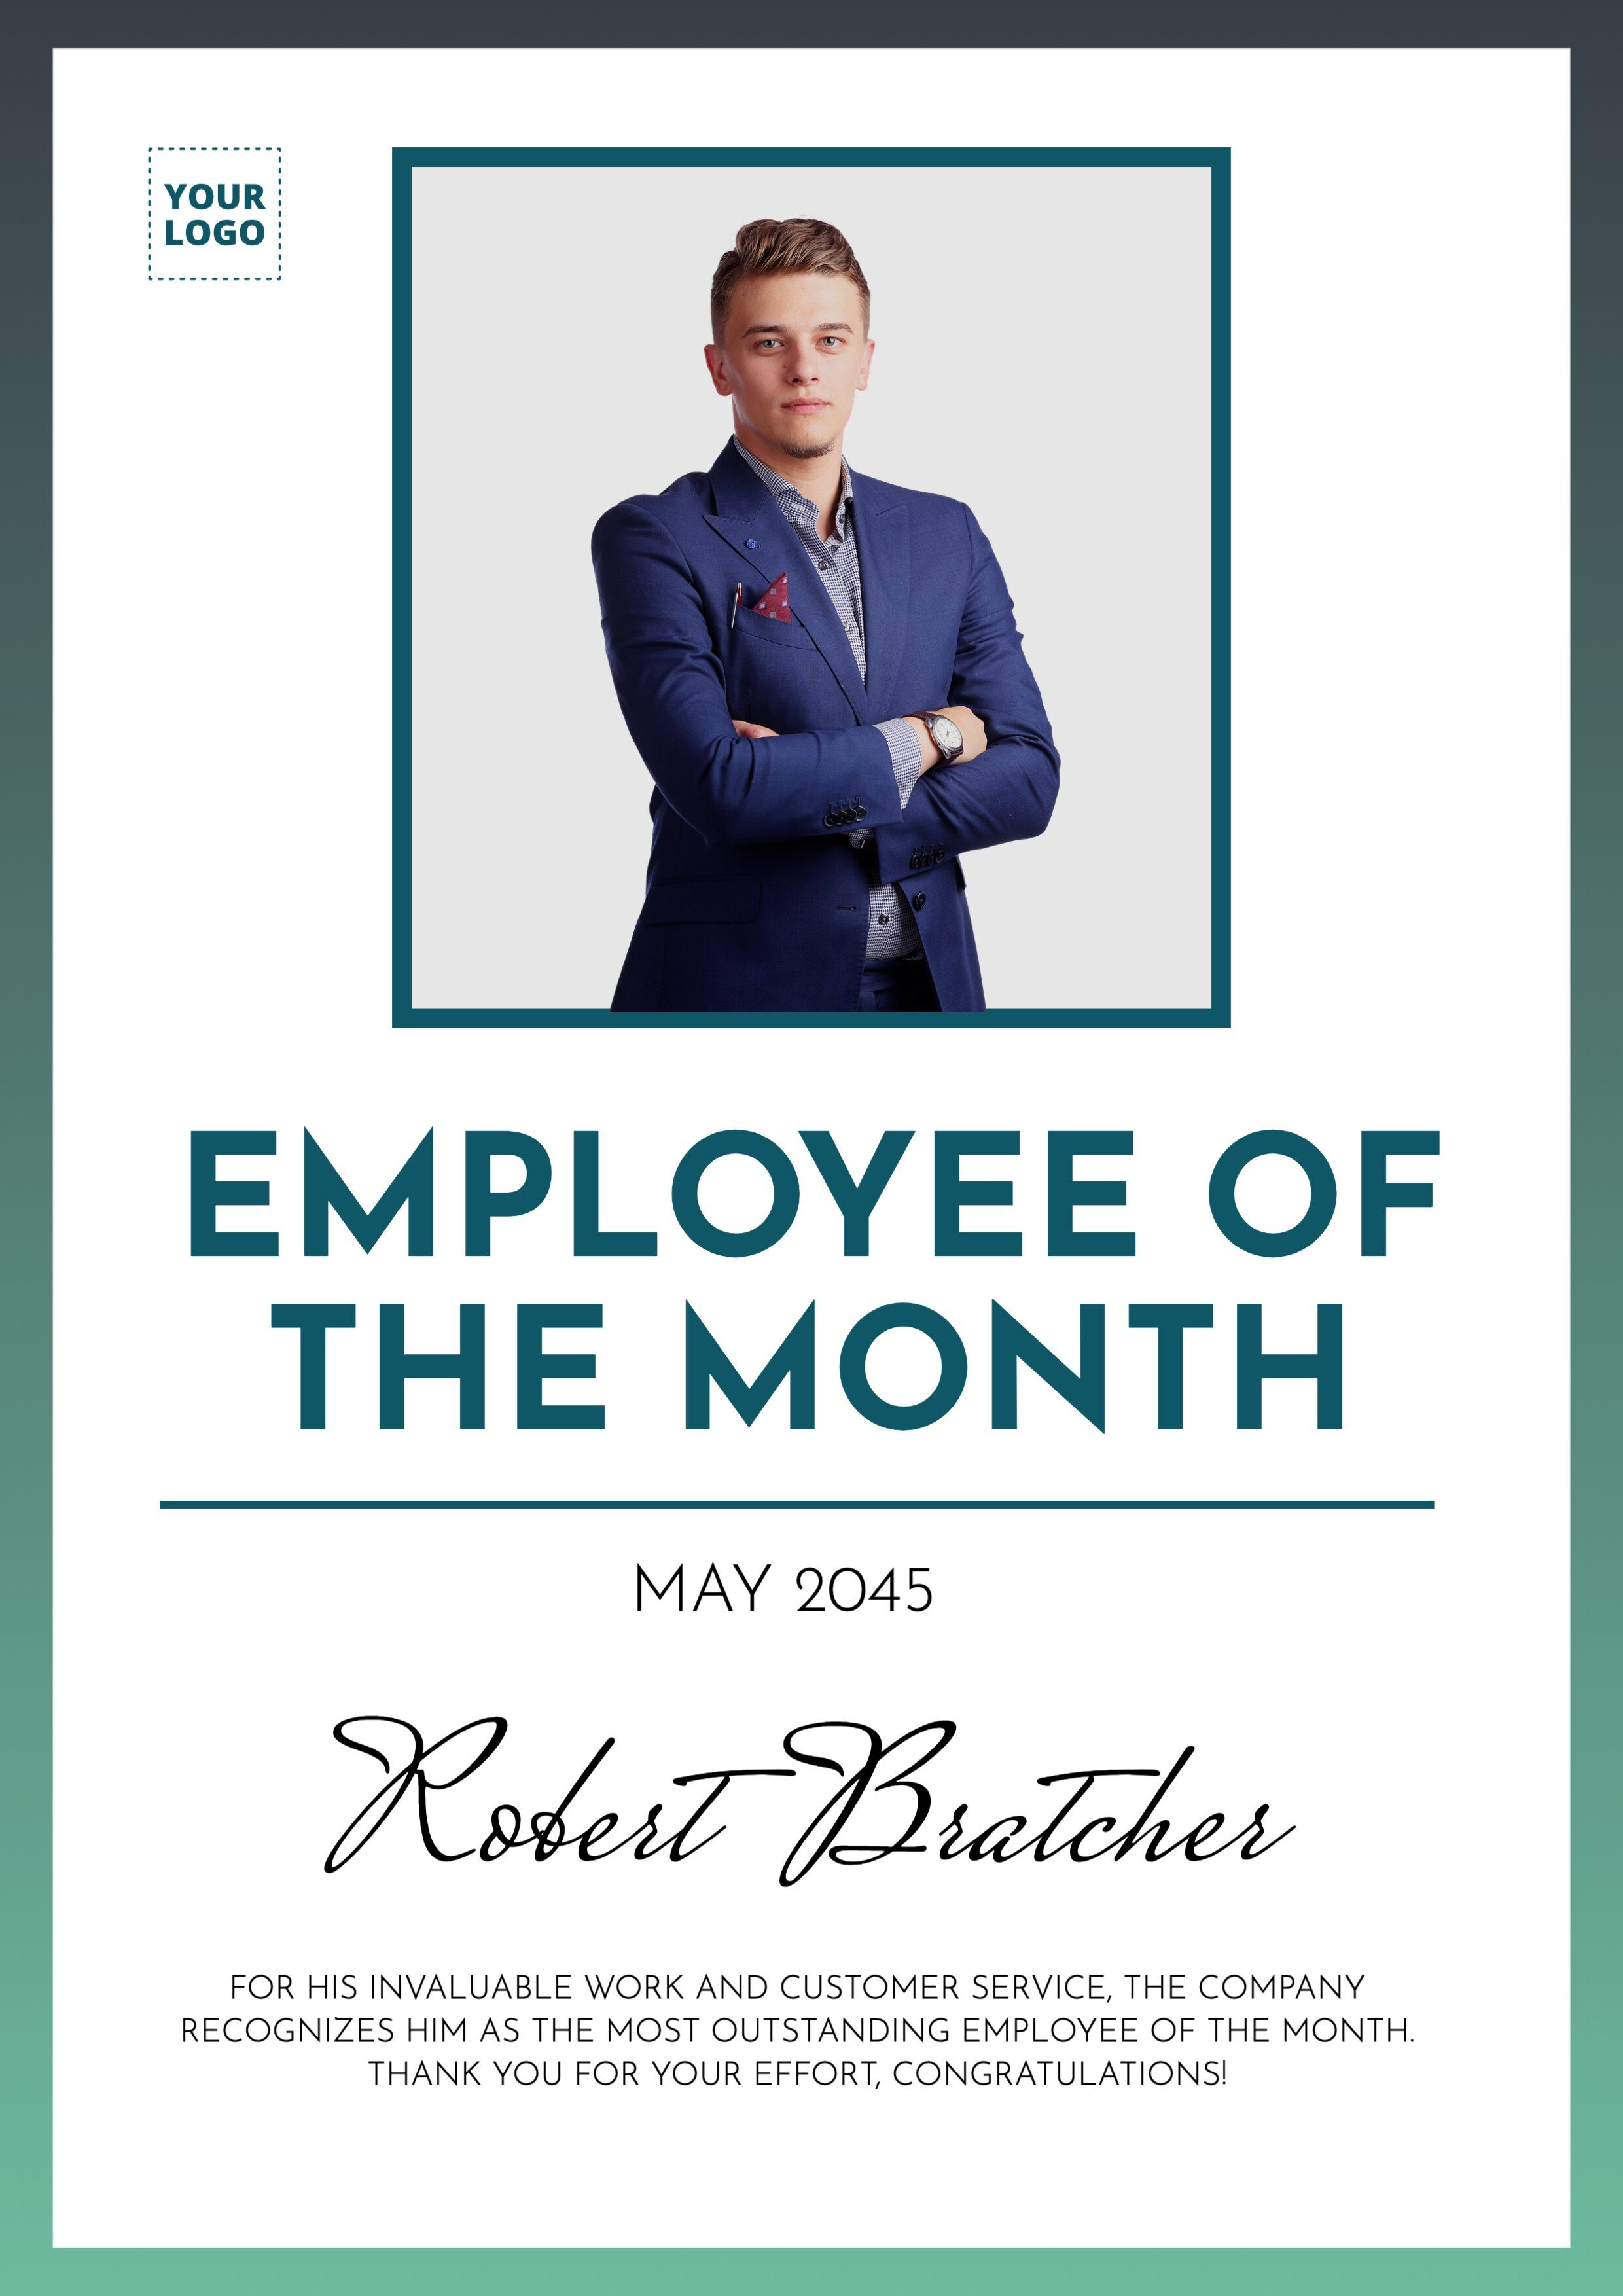 Custom Poster Of Employee Of The Month Employee Recognition Board Employee Services Certificate